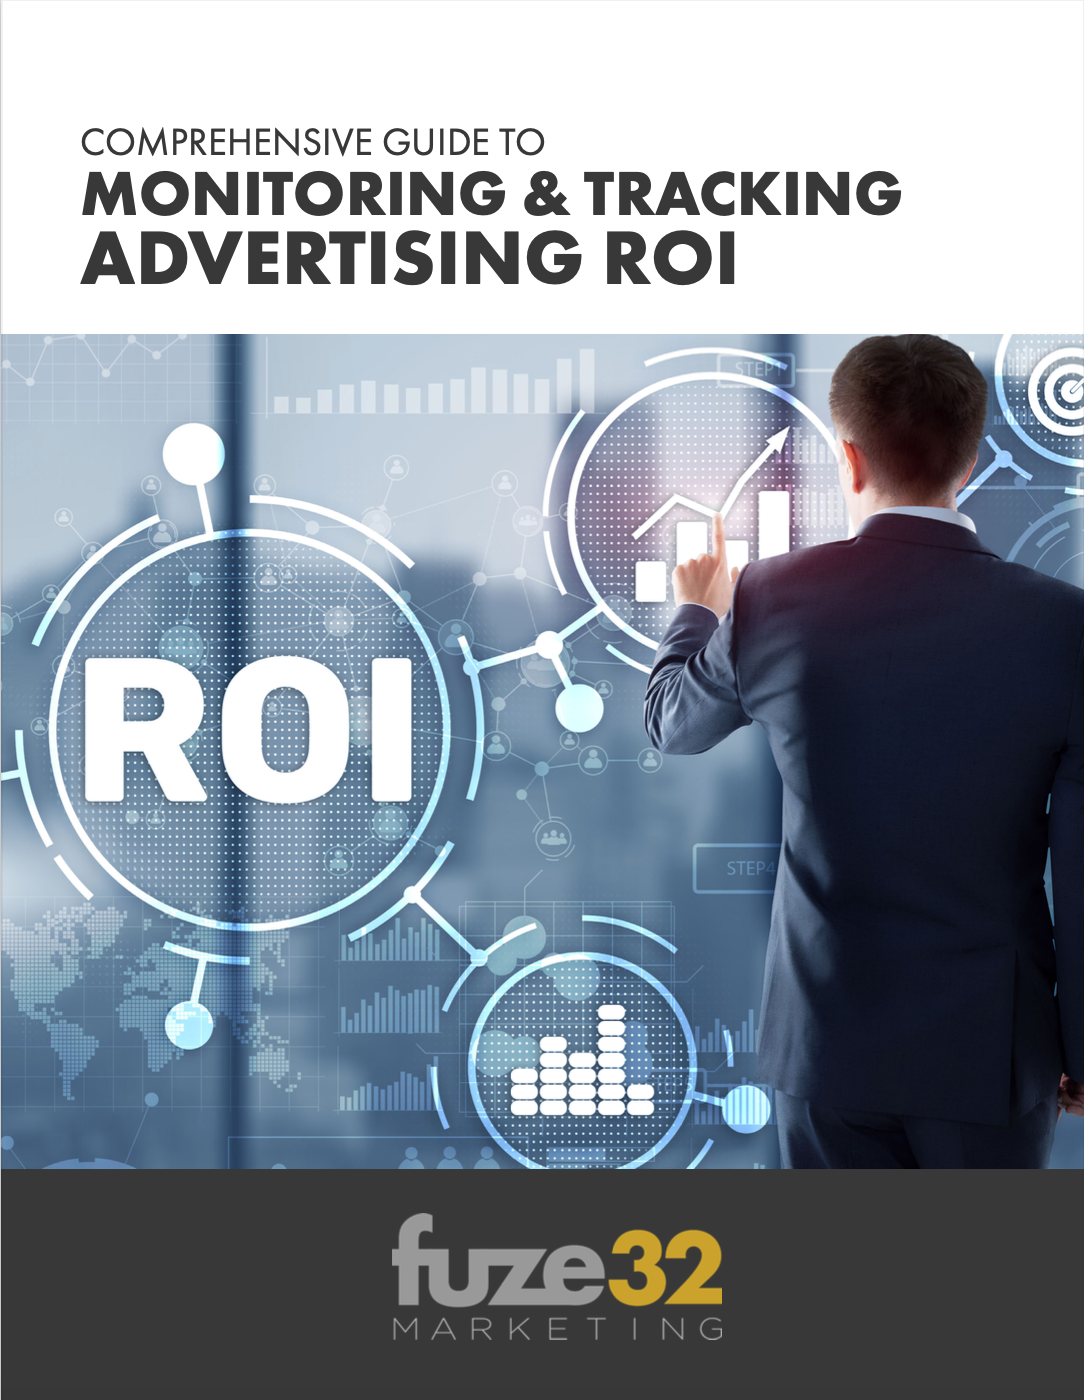 Comprehensive-Guide-to-Monitoring-&-Tracking-Advertising-ROI